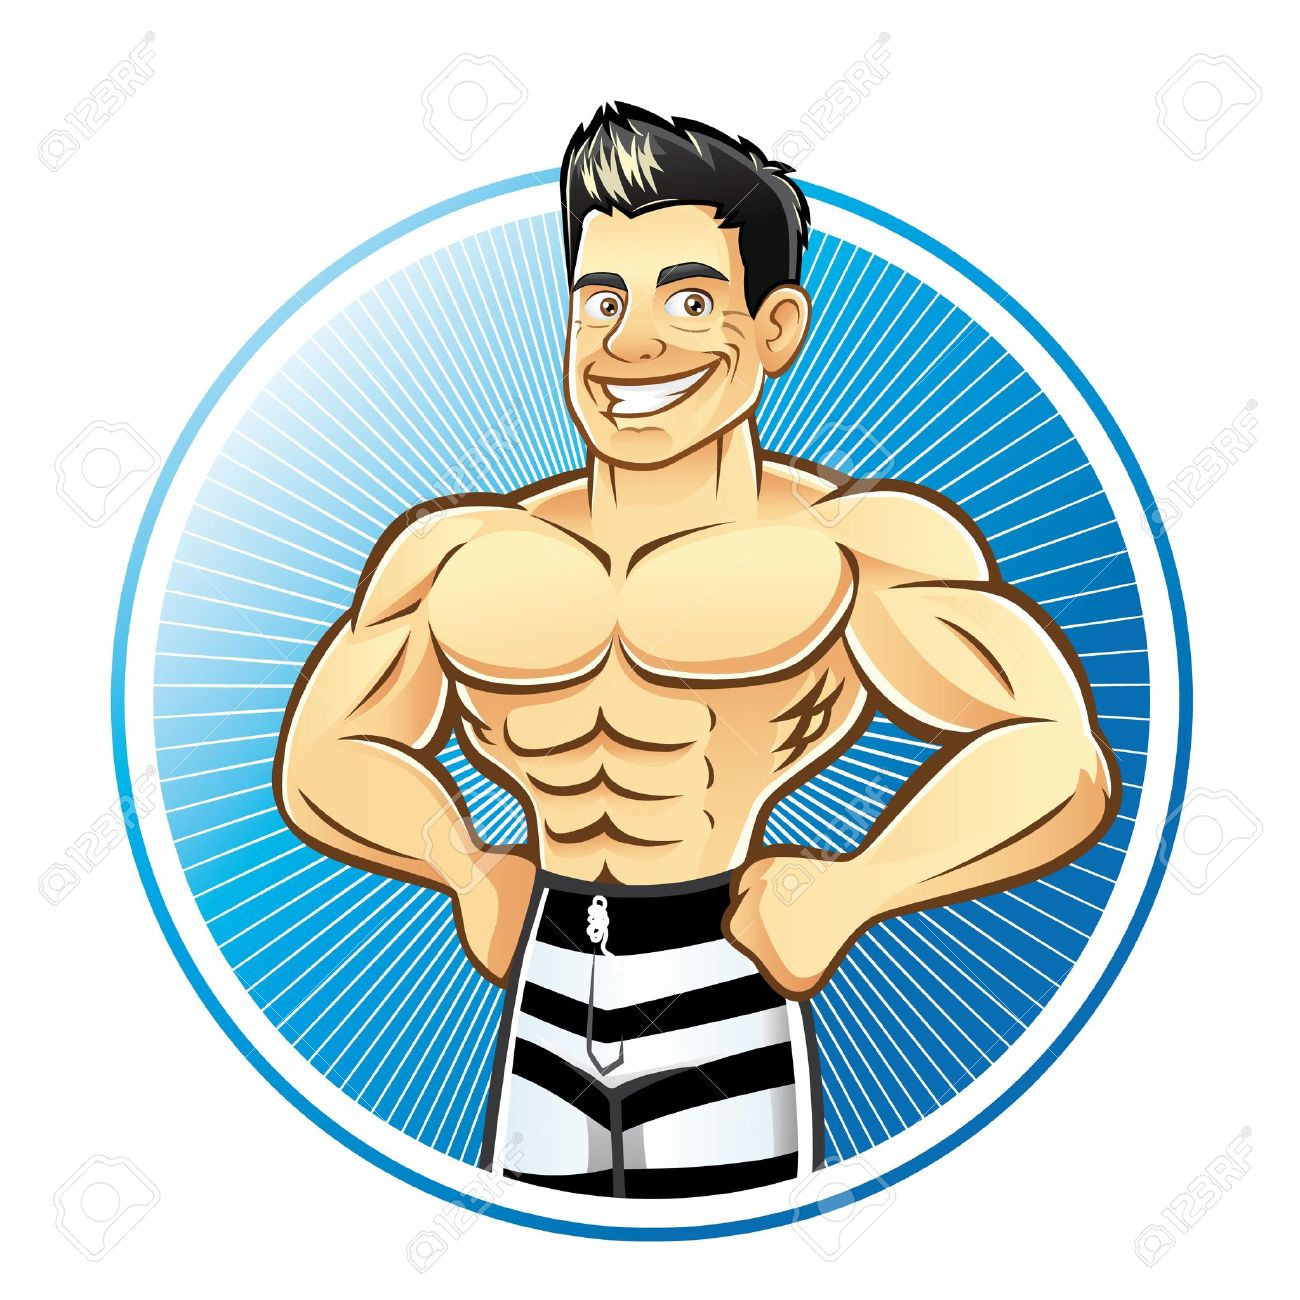 Muscle man cartoon clipart png black and white download Muscle Man Cartoons Group with 20+ items png black and white download